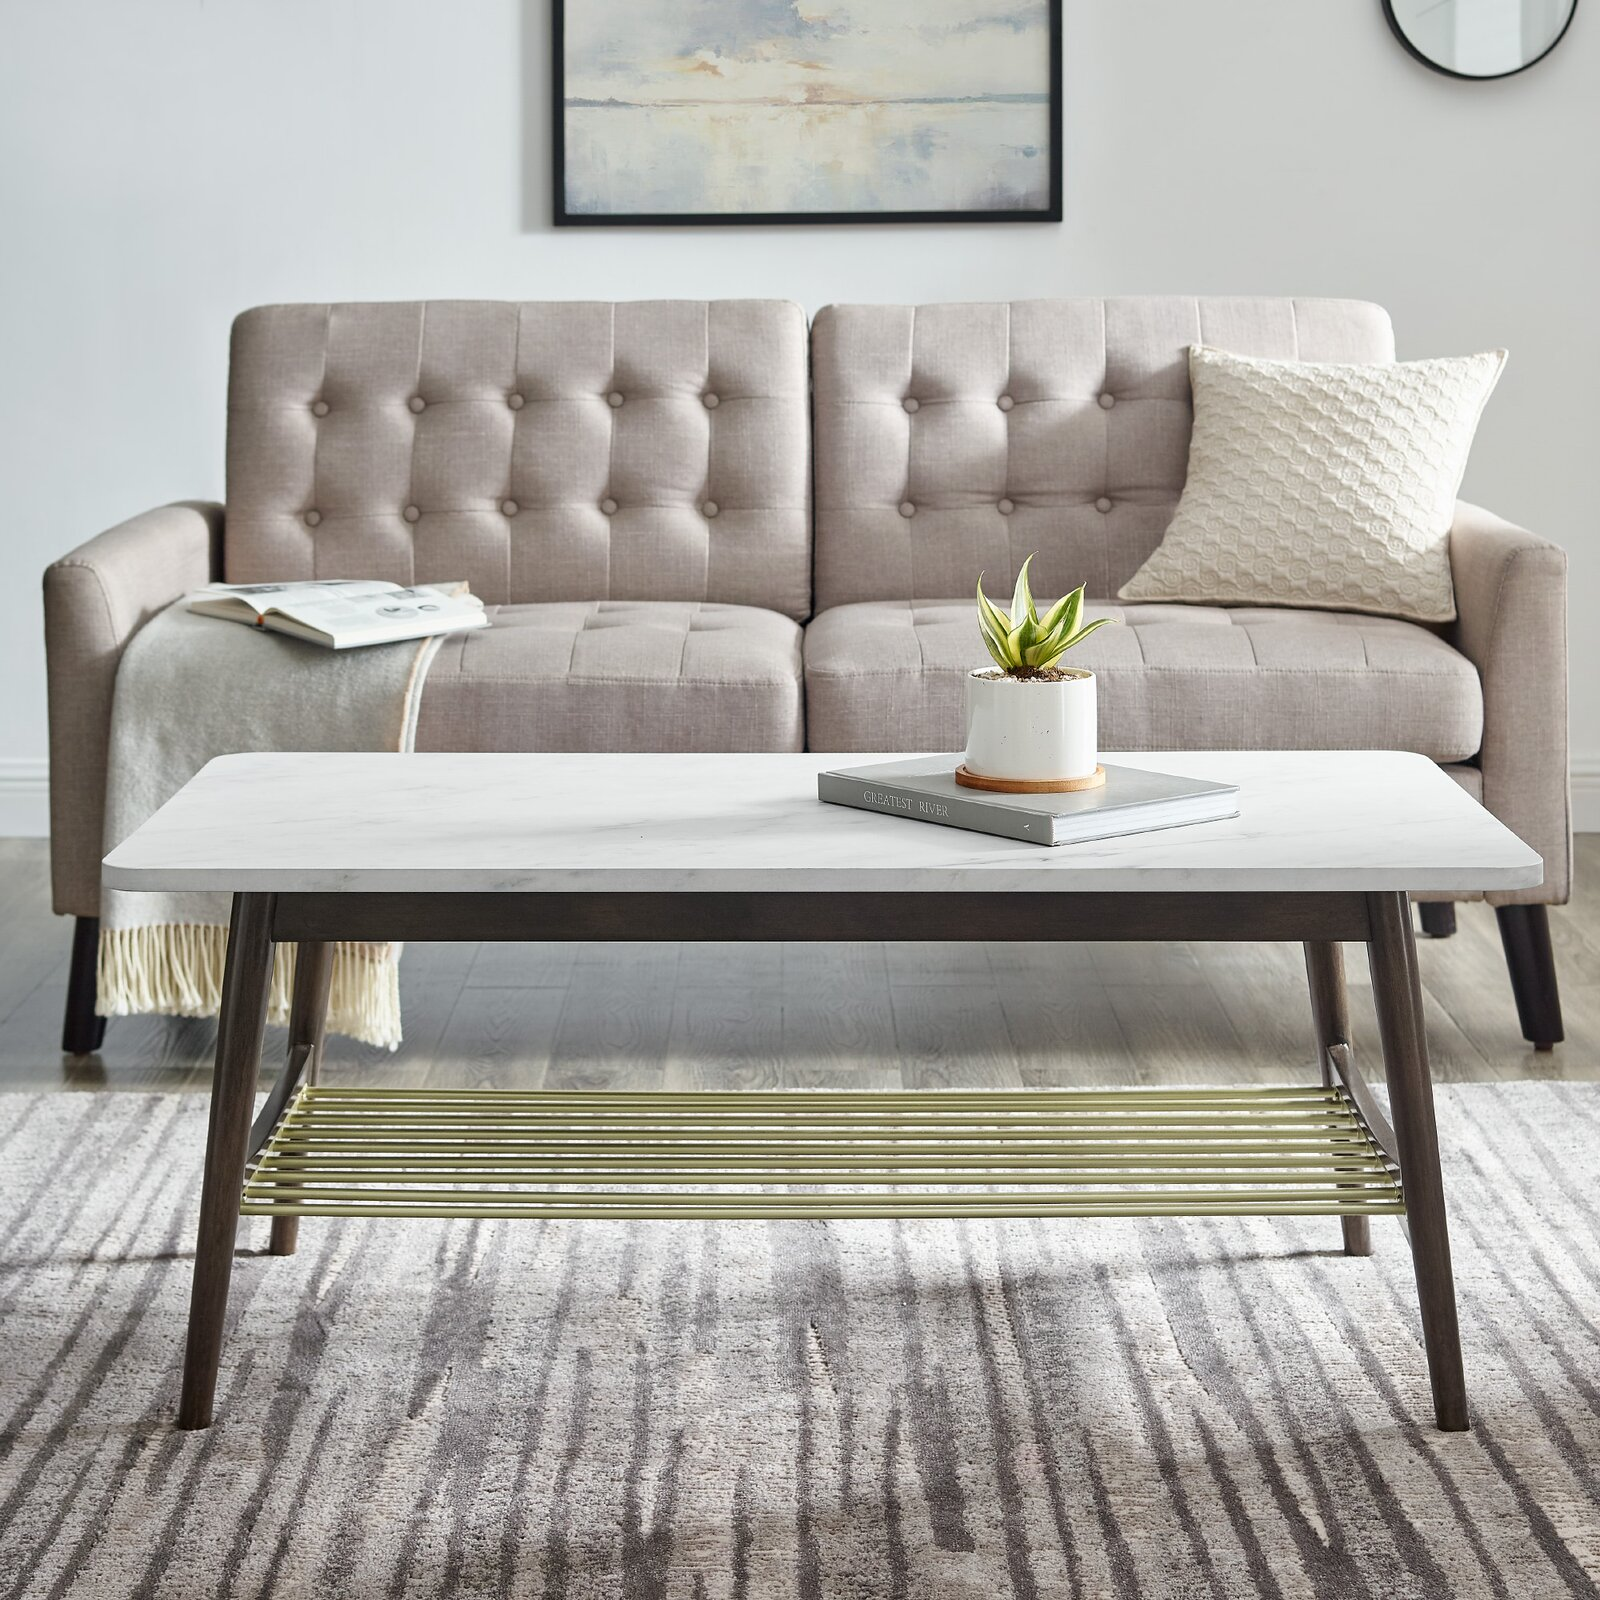 white-rectangle-coffee-table-dark-tapered-legs-brass-lower-shelf-unique-faux-marble-high-quality-furniture-for-mid-century-modern-living-room-ideas